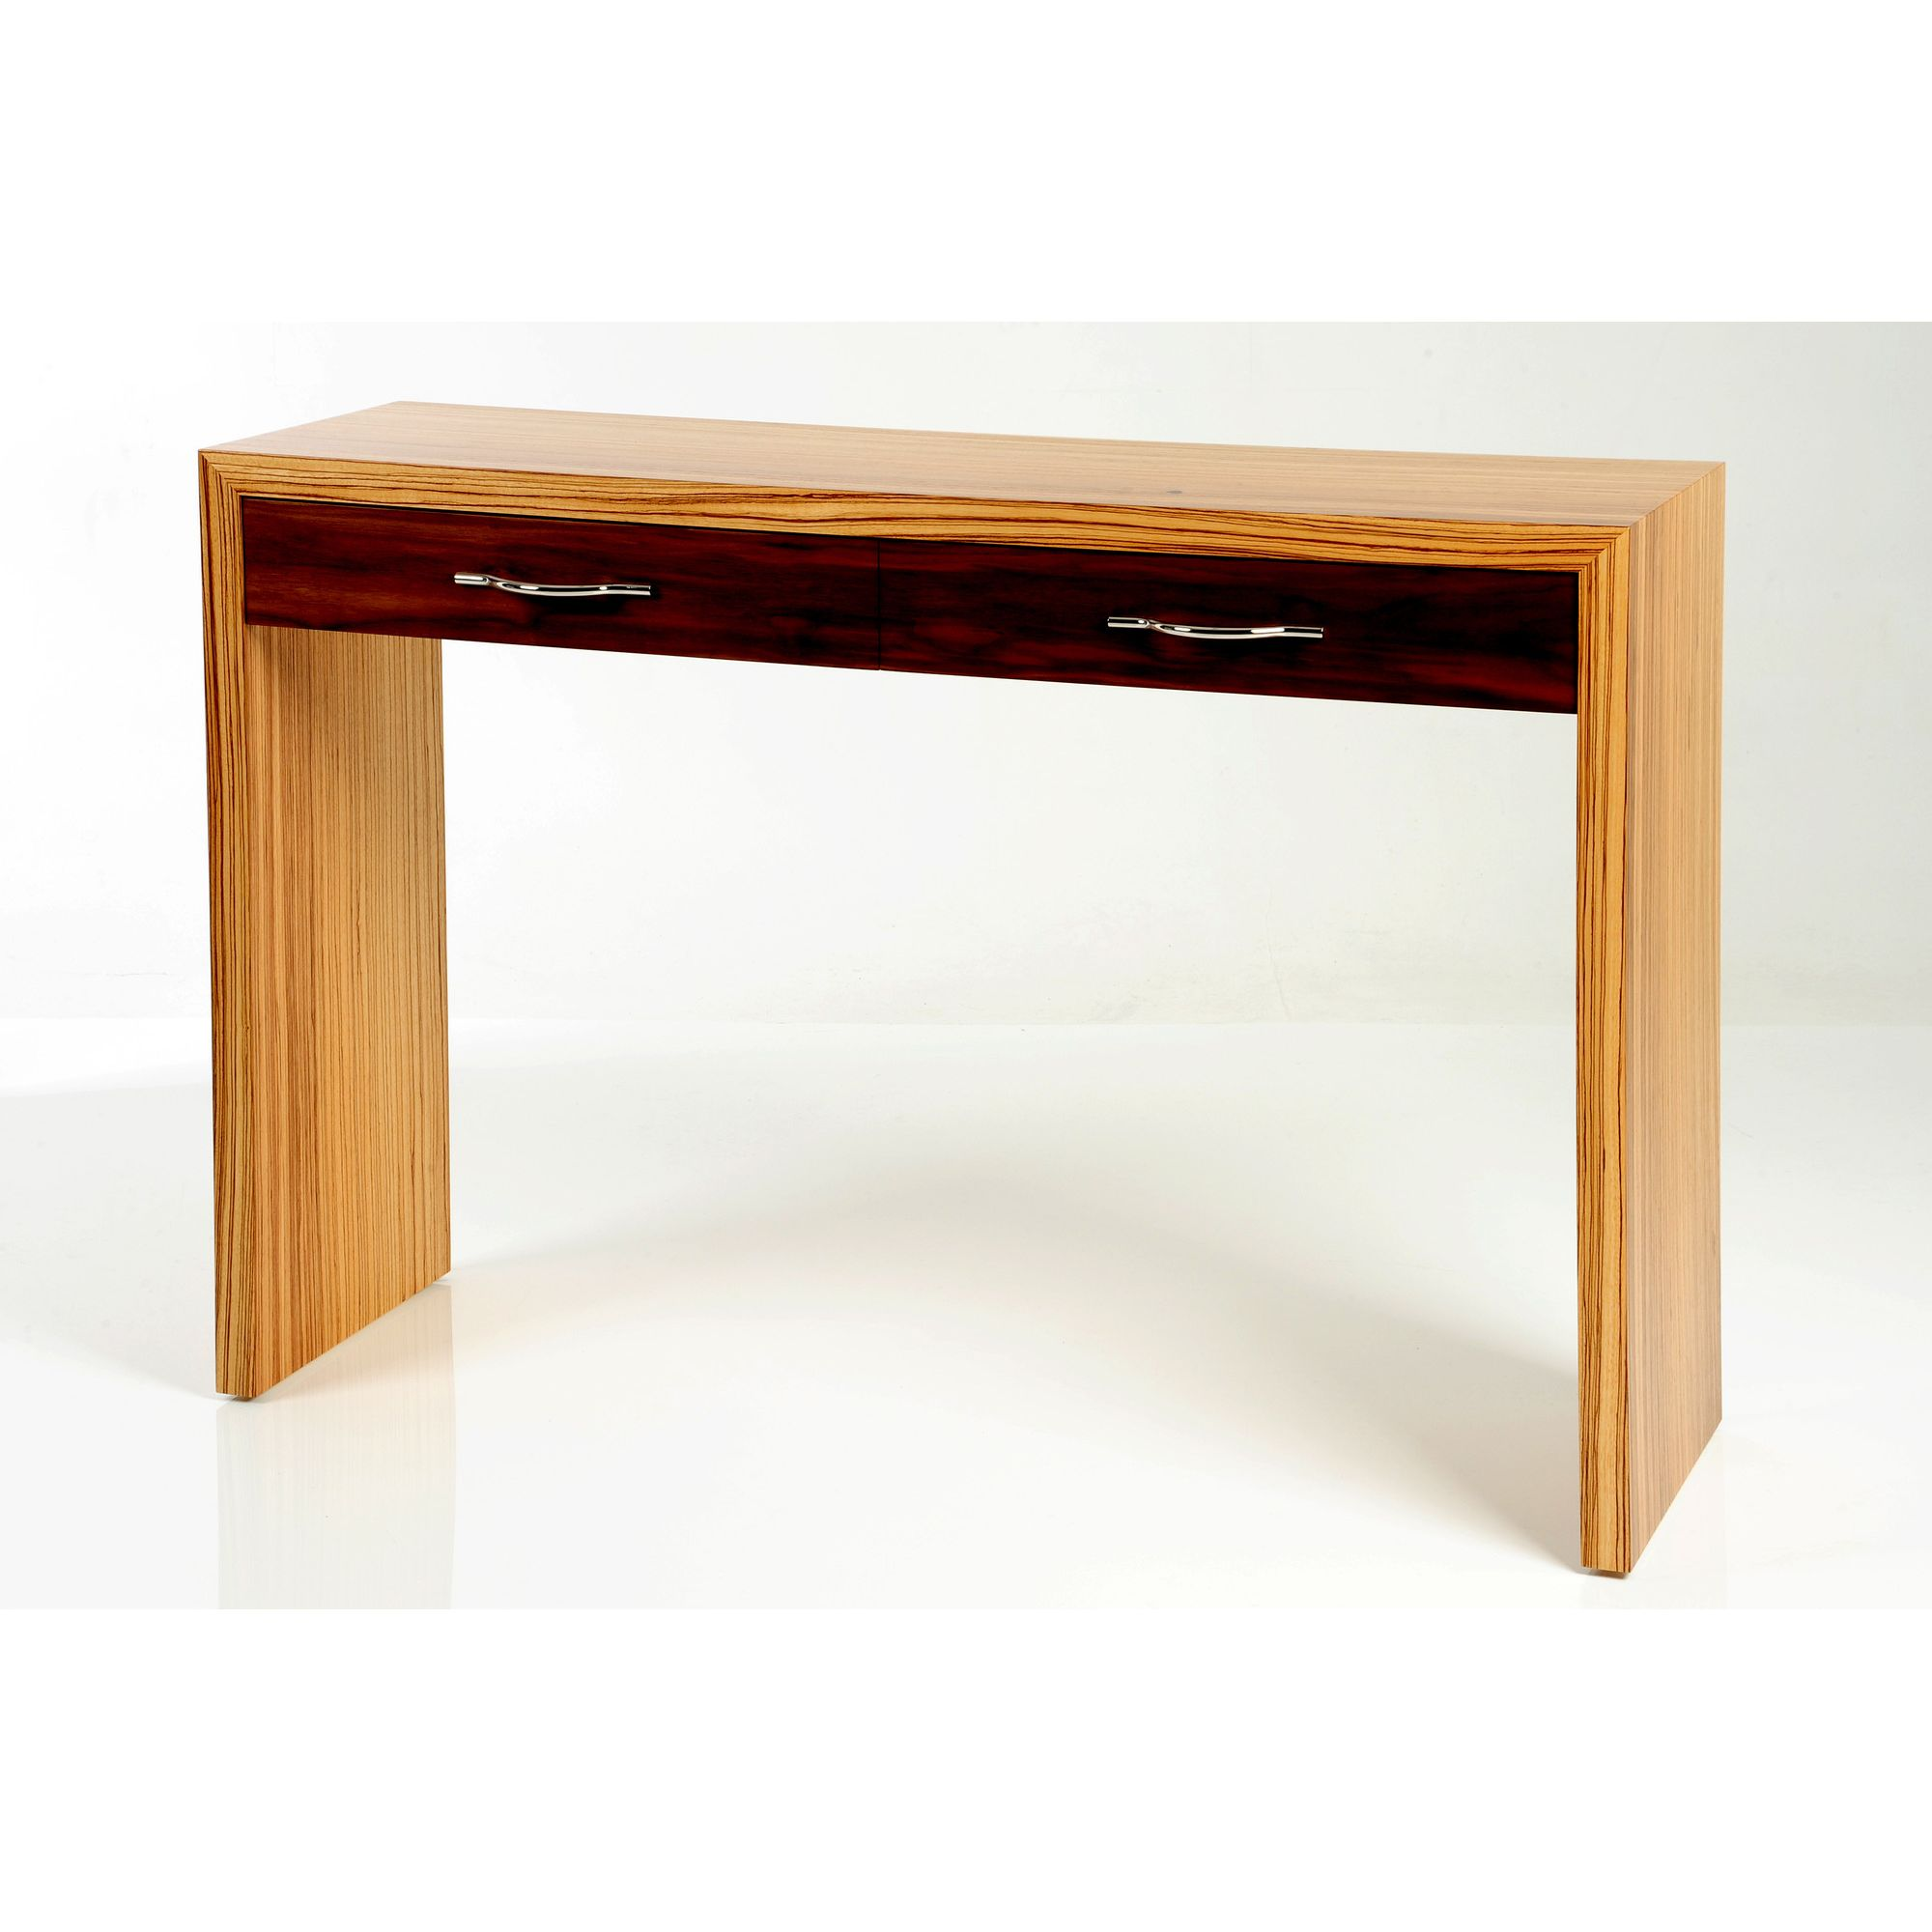 Trefurn Linear Occassional Table - Zebrano and Black Walnut at Tesco Direct